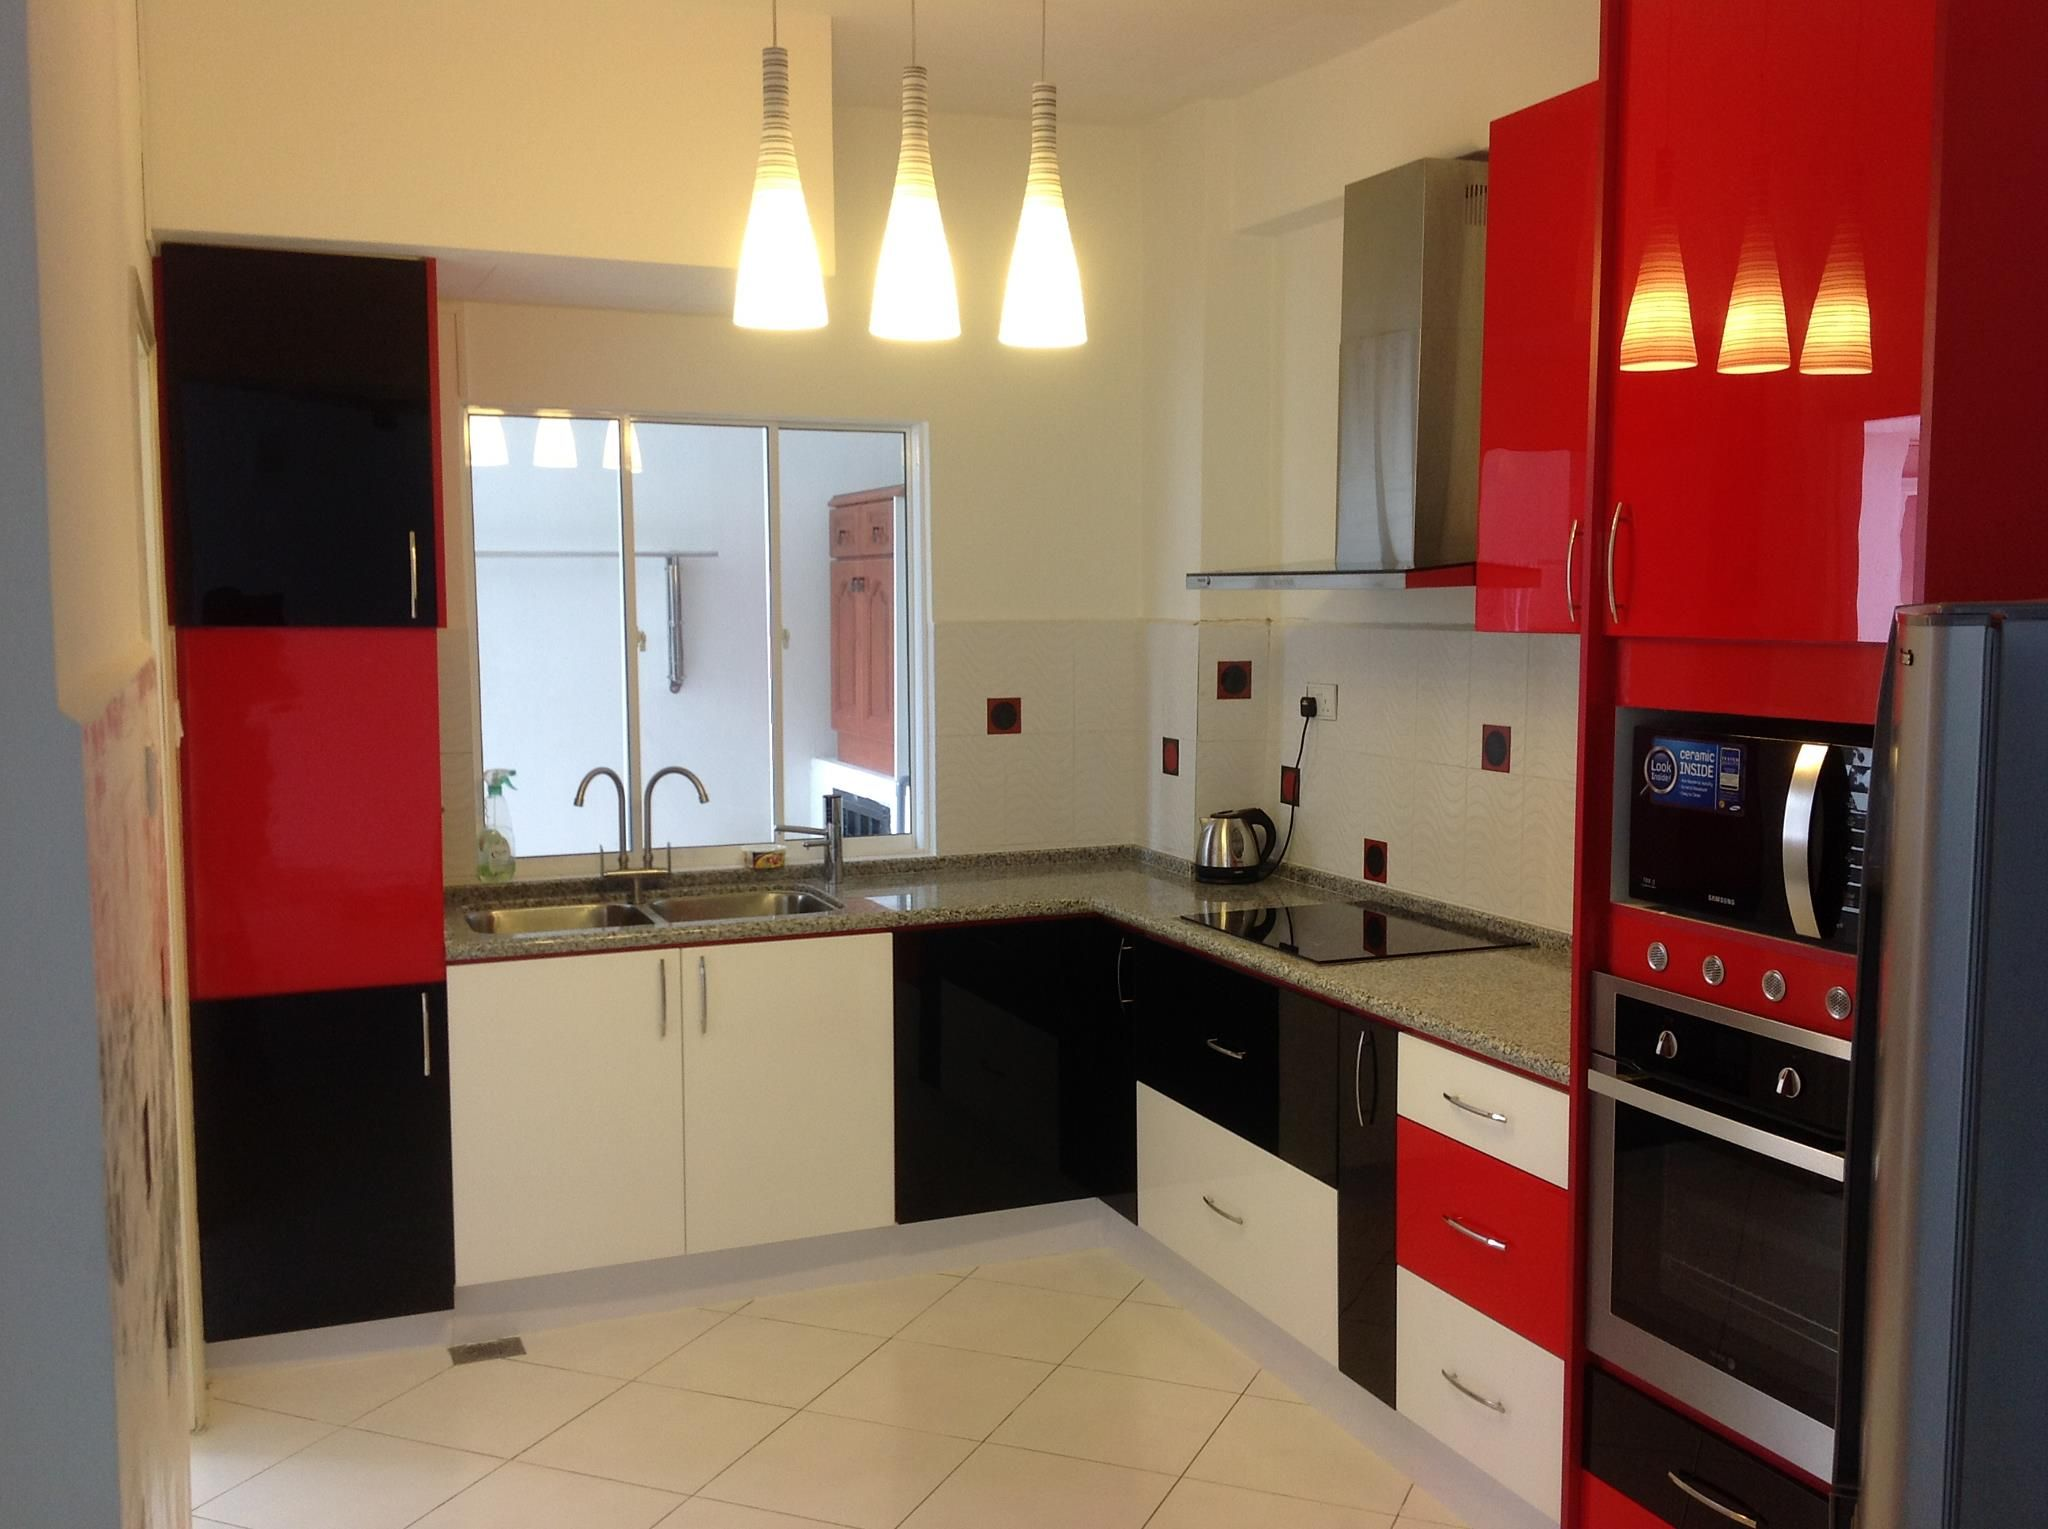 Kitchen Cabinet At Bukit Antarabangsa Ampang. Red, Black + White Acrylic  Material Door With